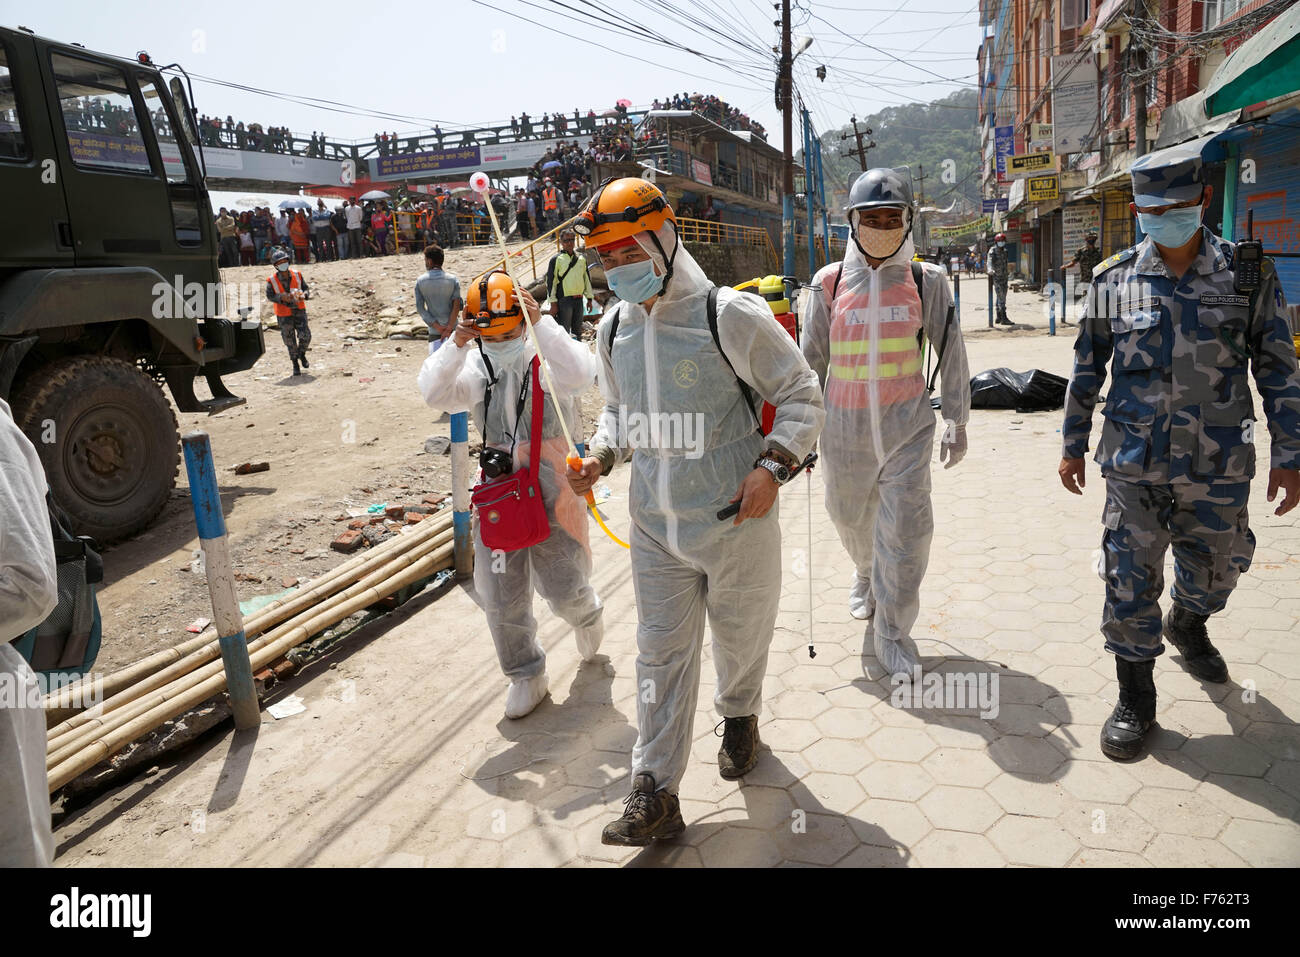 Rescue personnel spray disinfectant, earthquake, nepal, asia - Stock Image